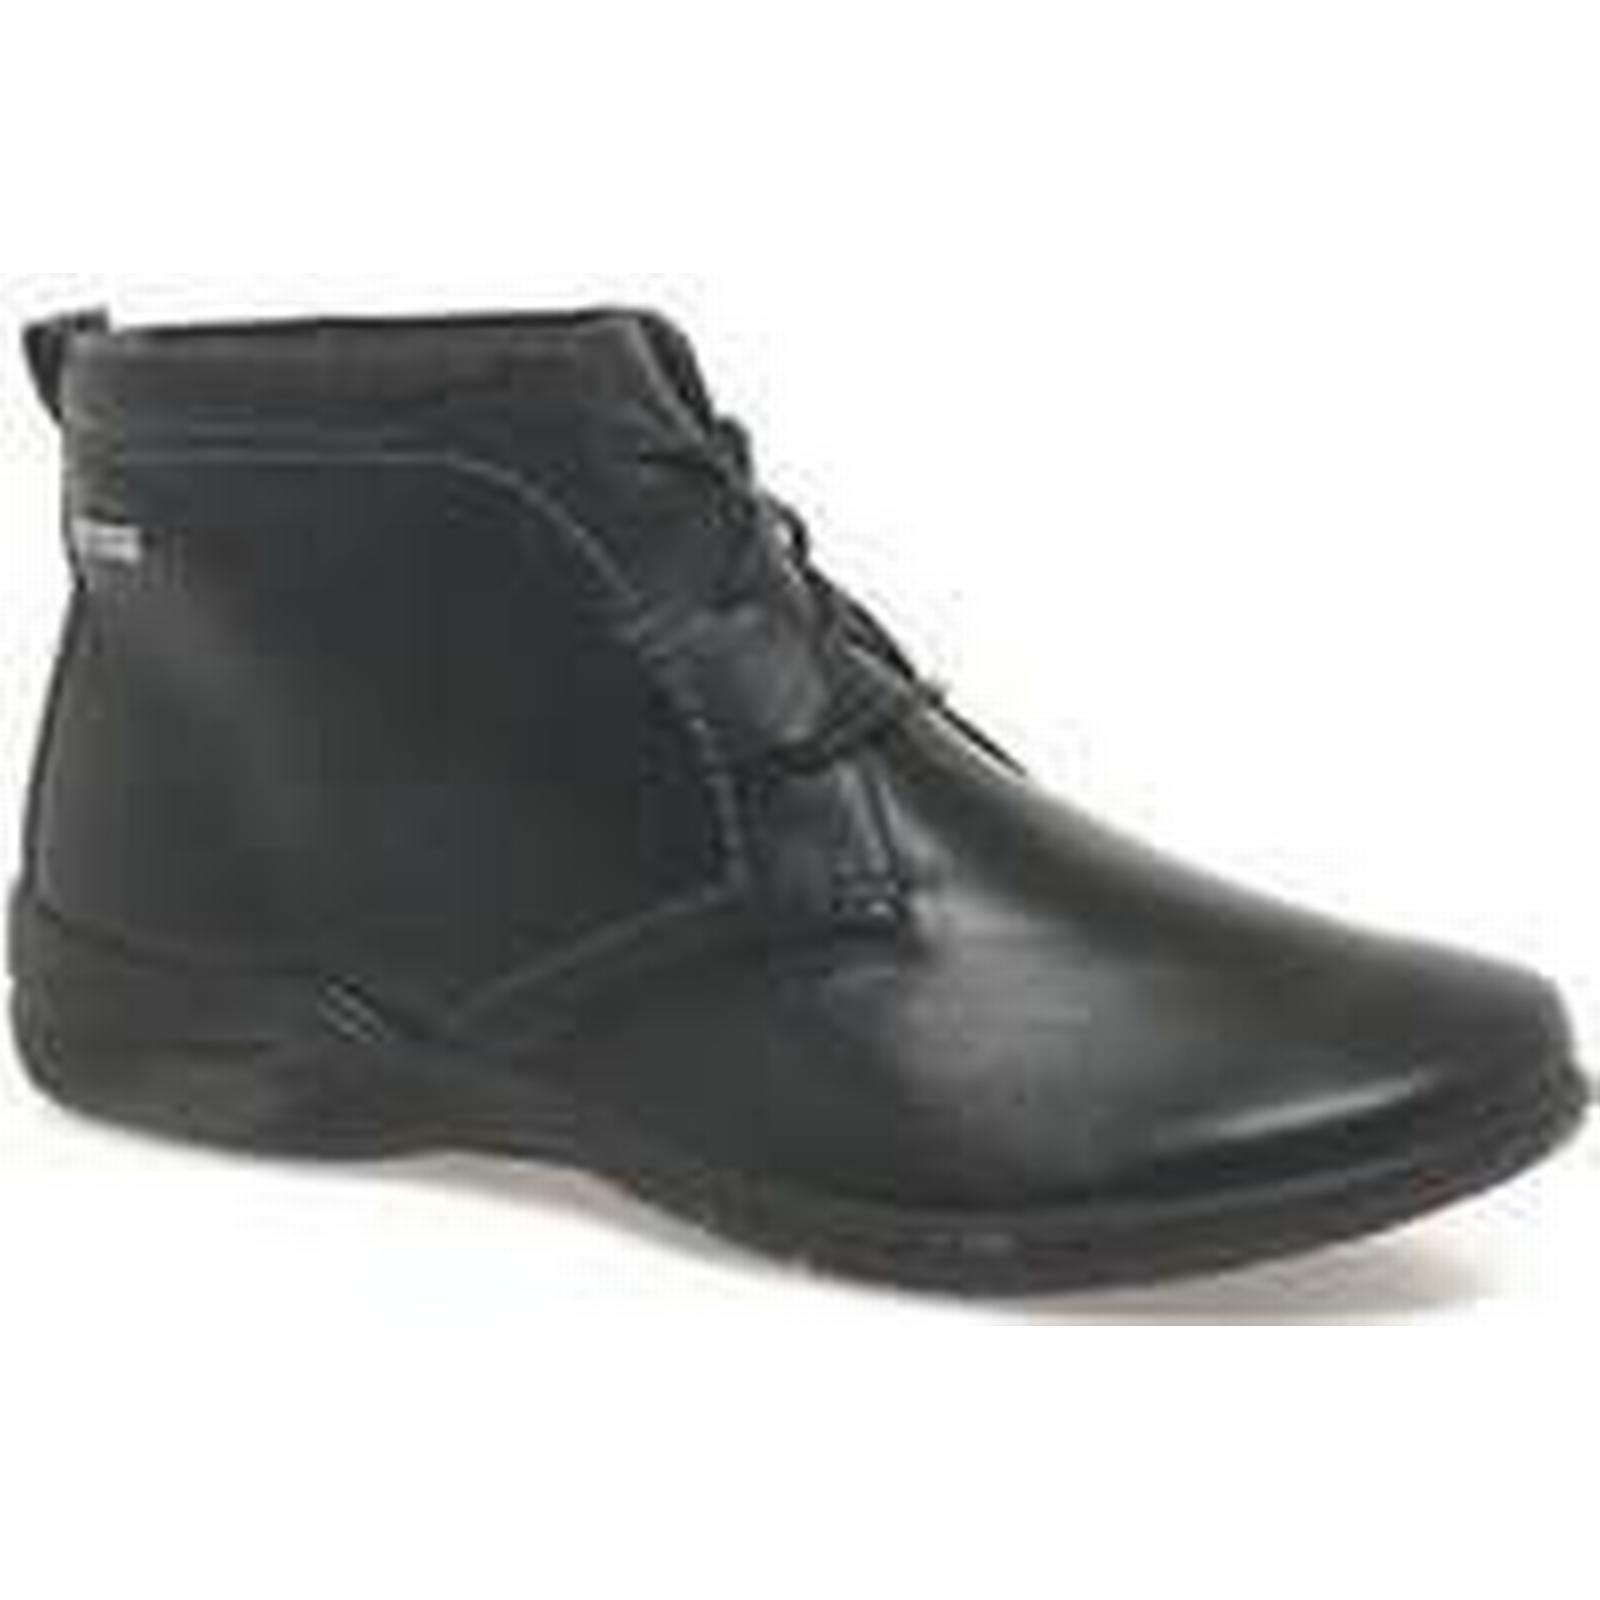 Spartoo.co.uk Josef Mid Seibel Fabienne Womens Ankle Boots women's Mid Josef Boots in Black 1c486a